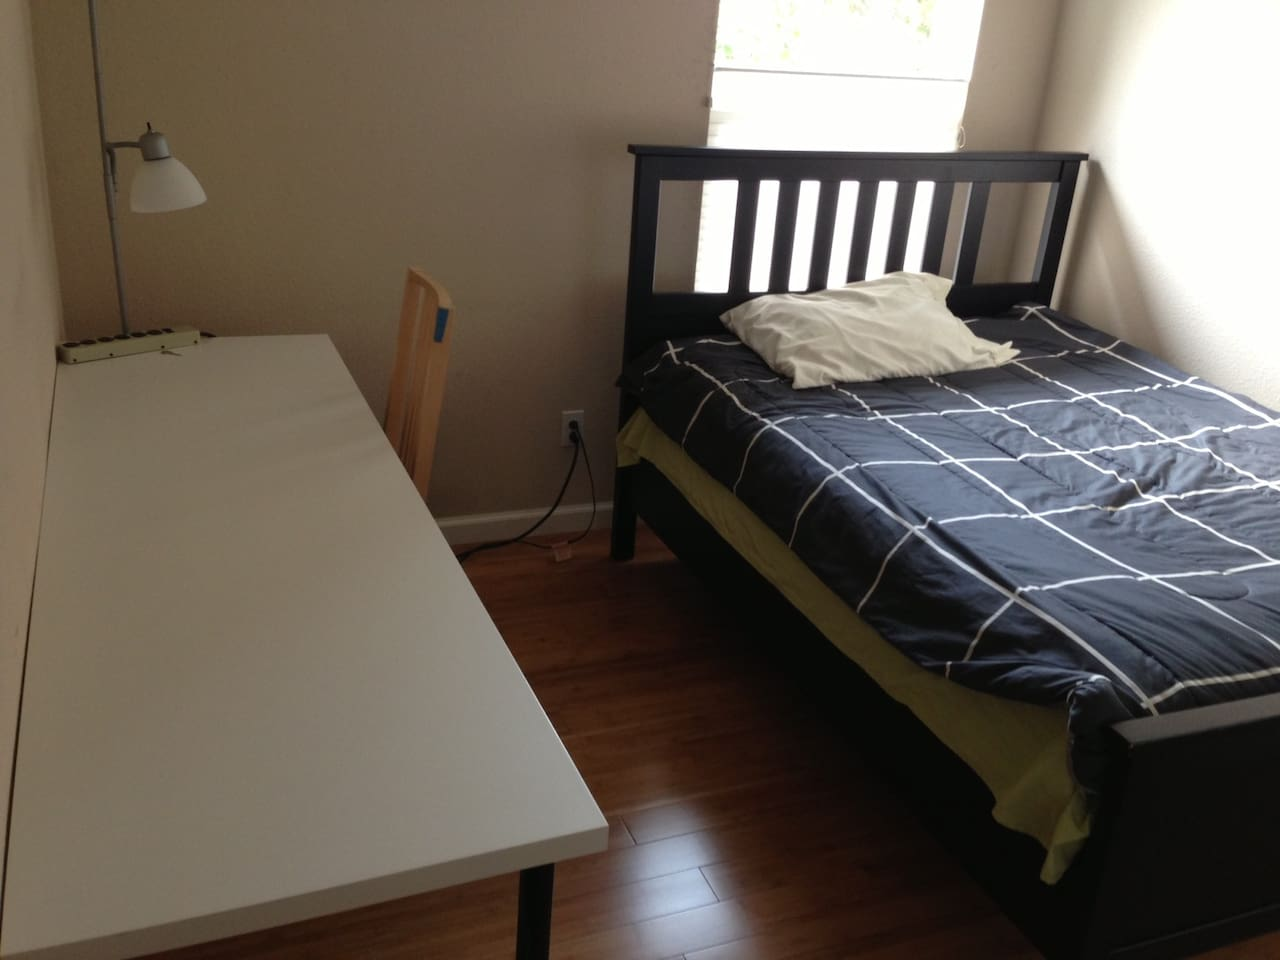 New Full Size bed and Ikea desk